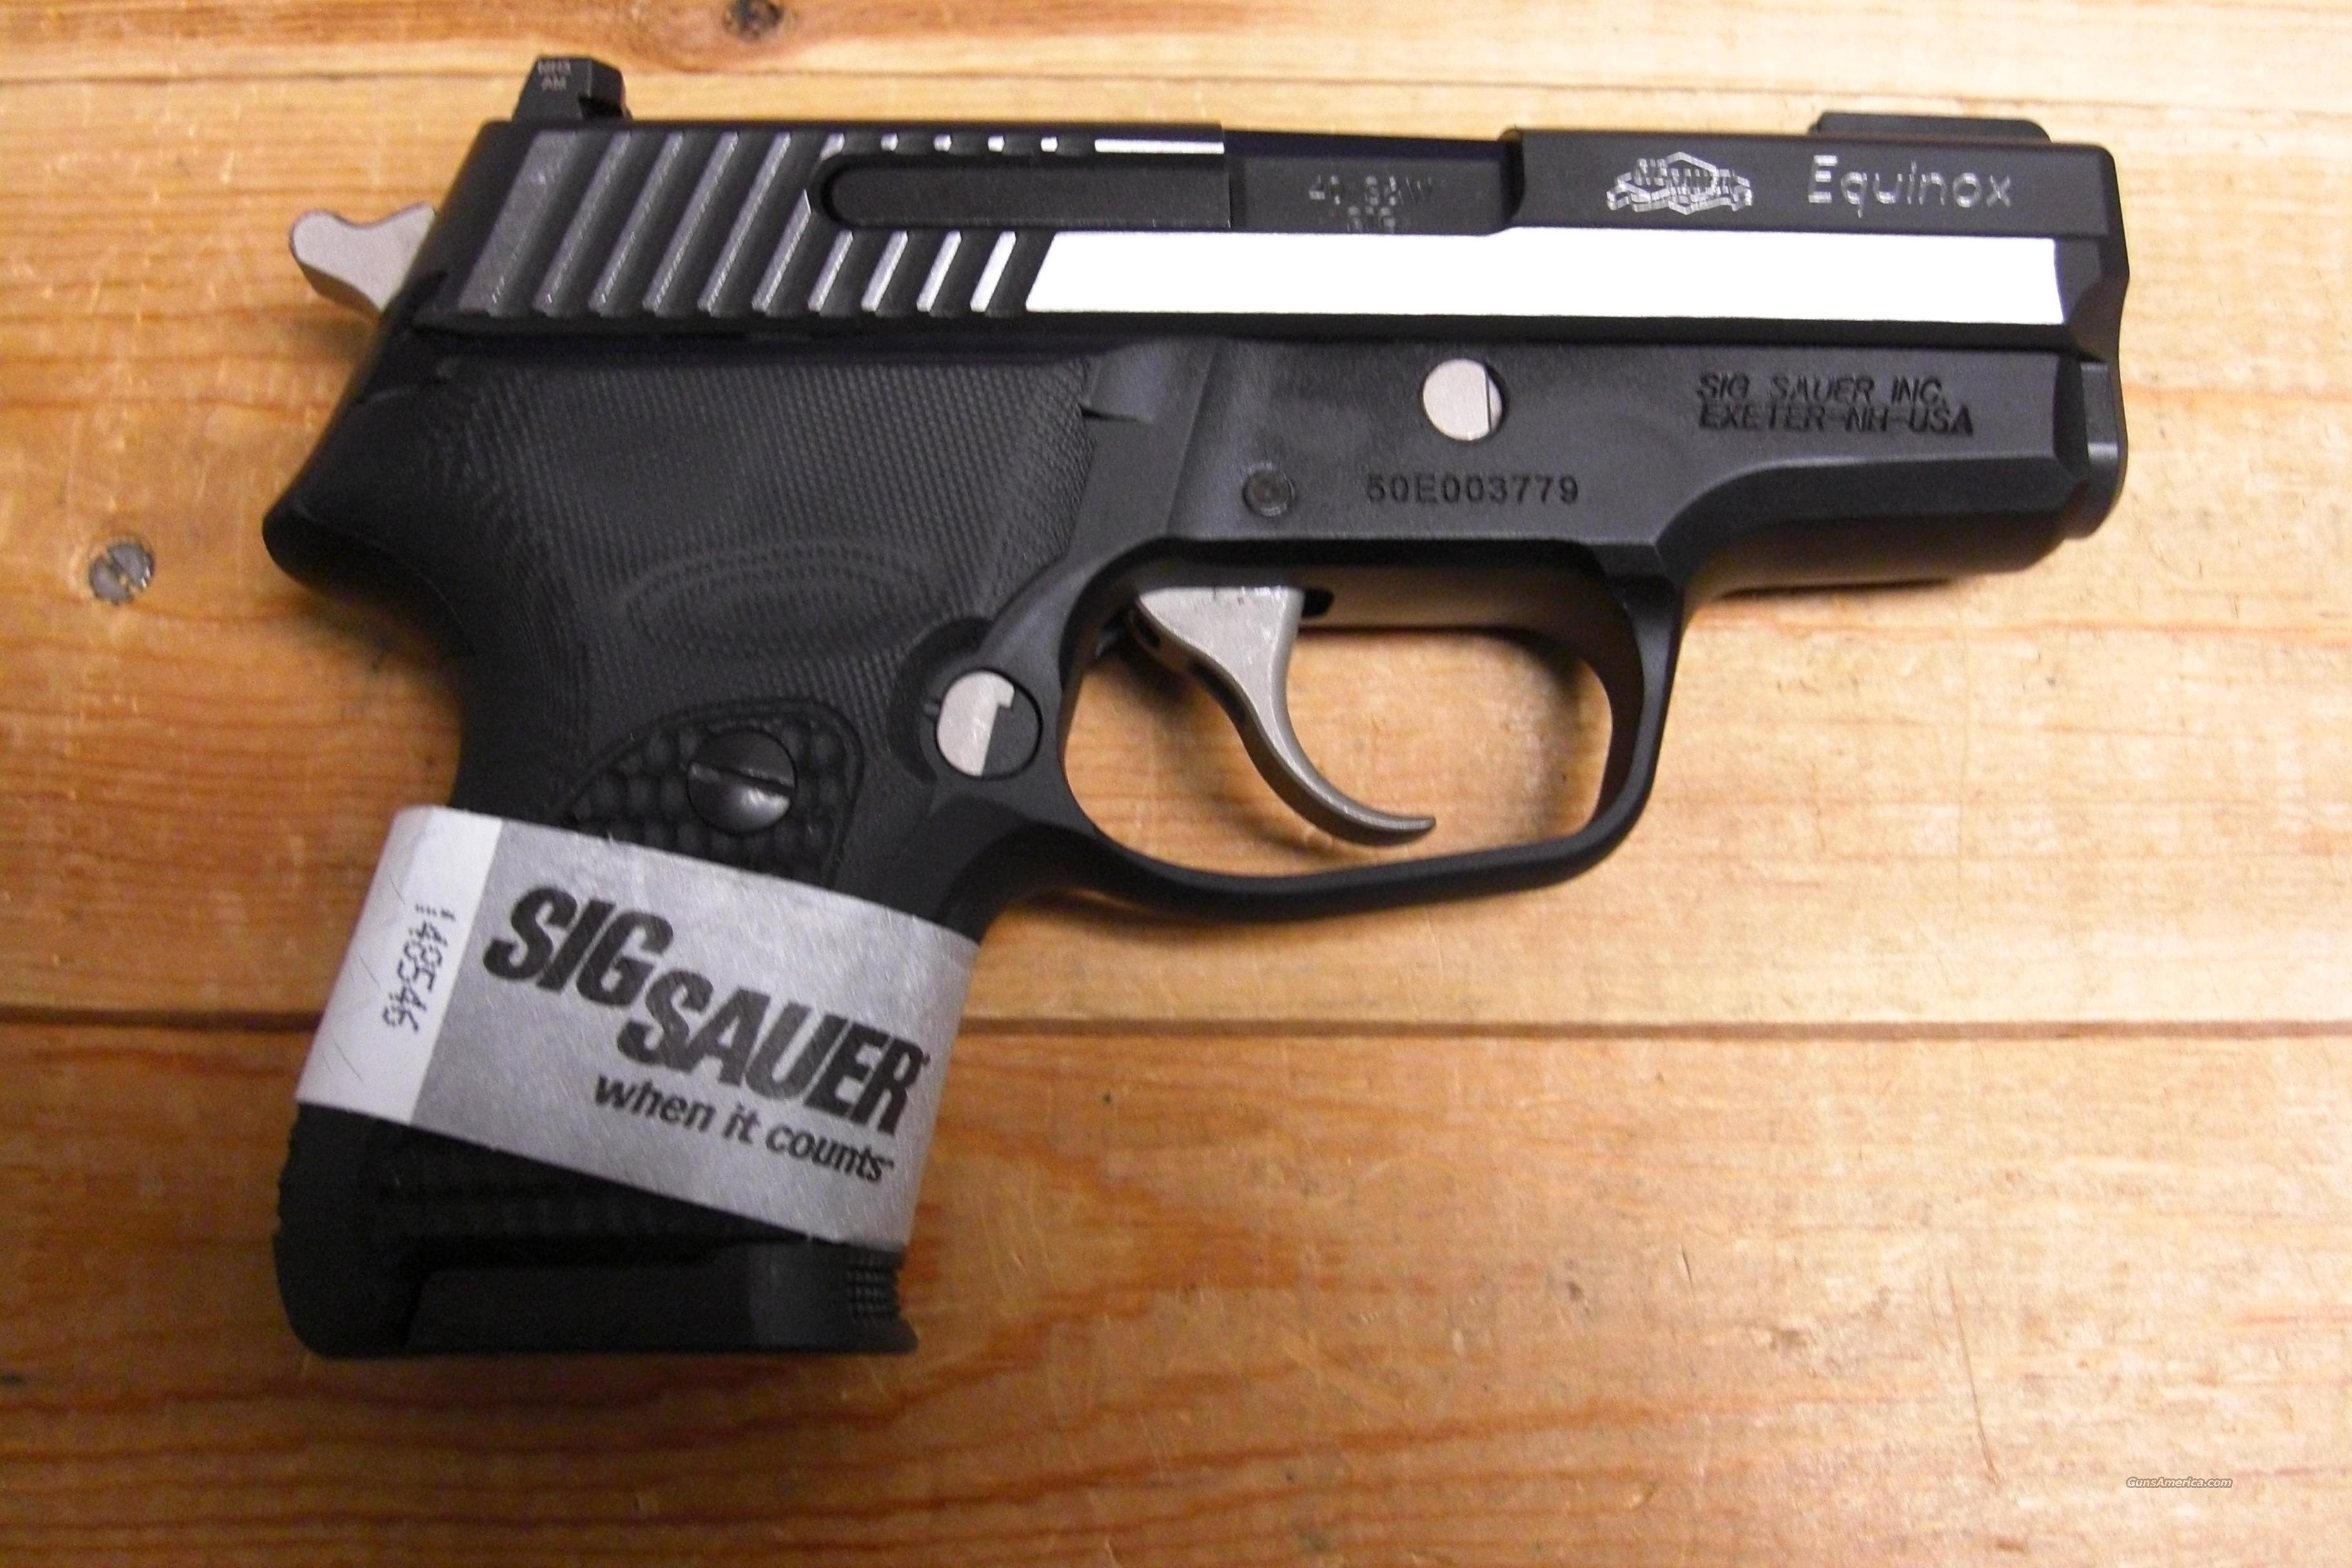 P224 Equinox w/nightsights  Guns > Pistols > Sig - Sauer/Sigarms Pistols > Other